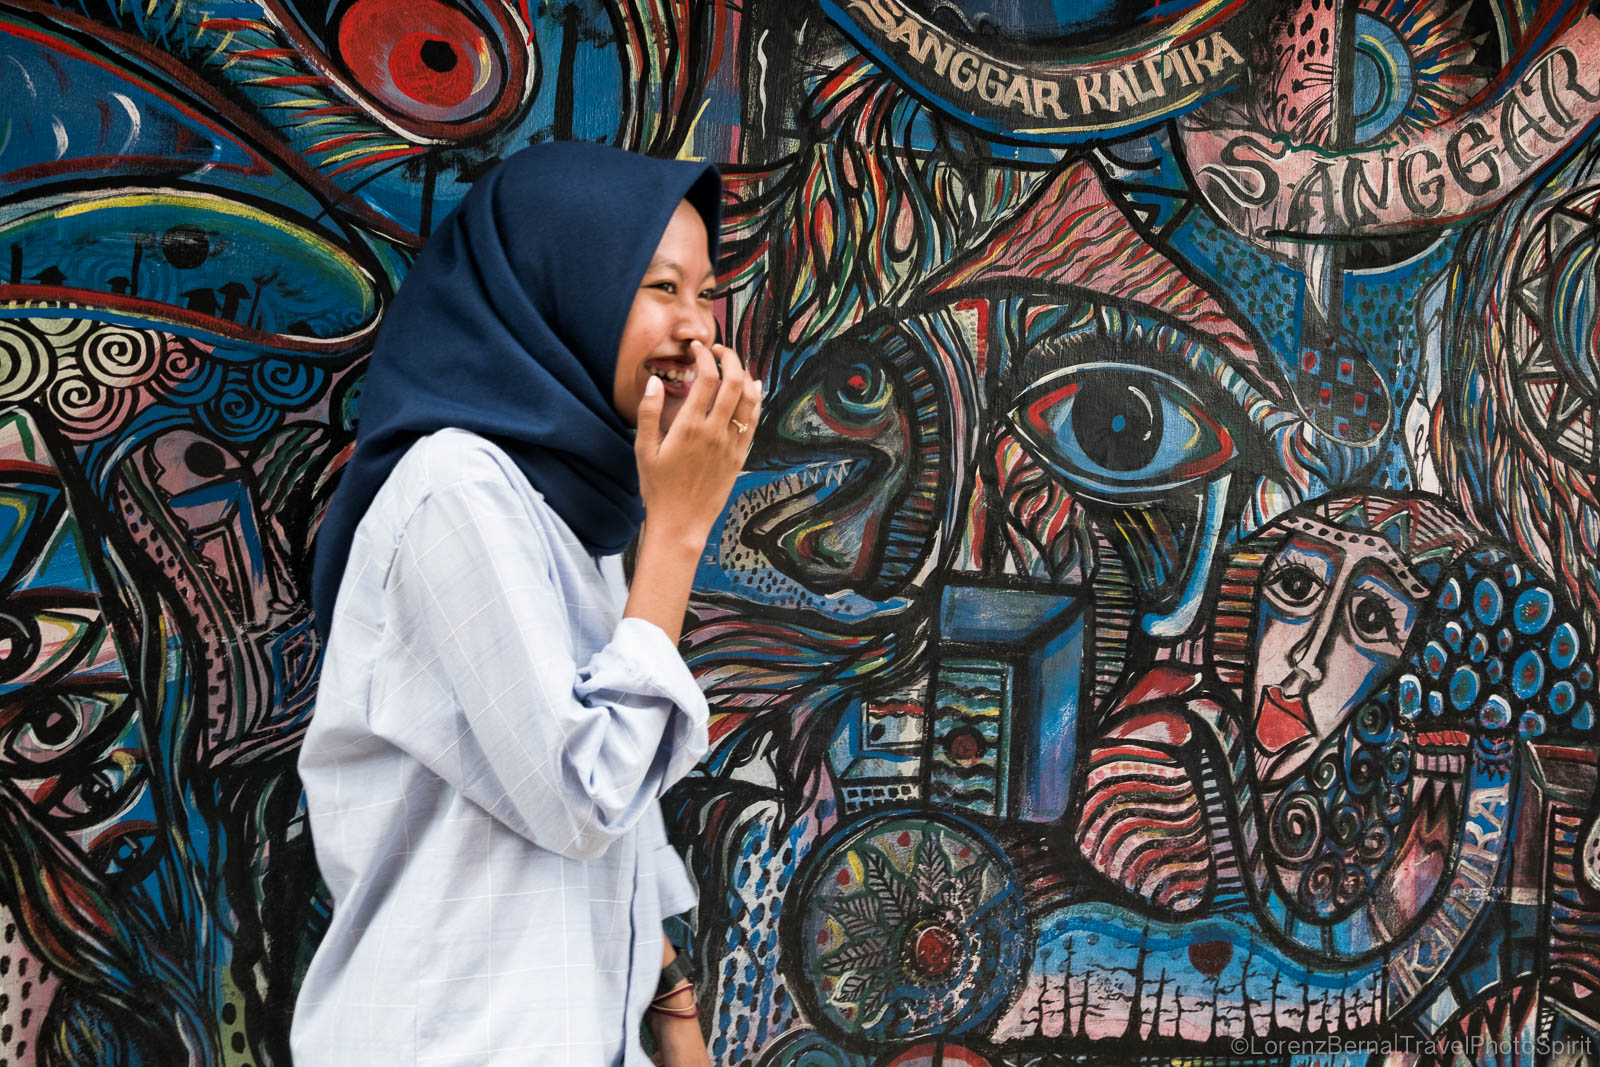 Javanese modern girl in front of a graffiti wall in Yogyakarta, Indonesia.